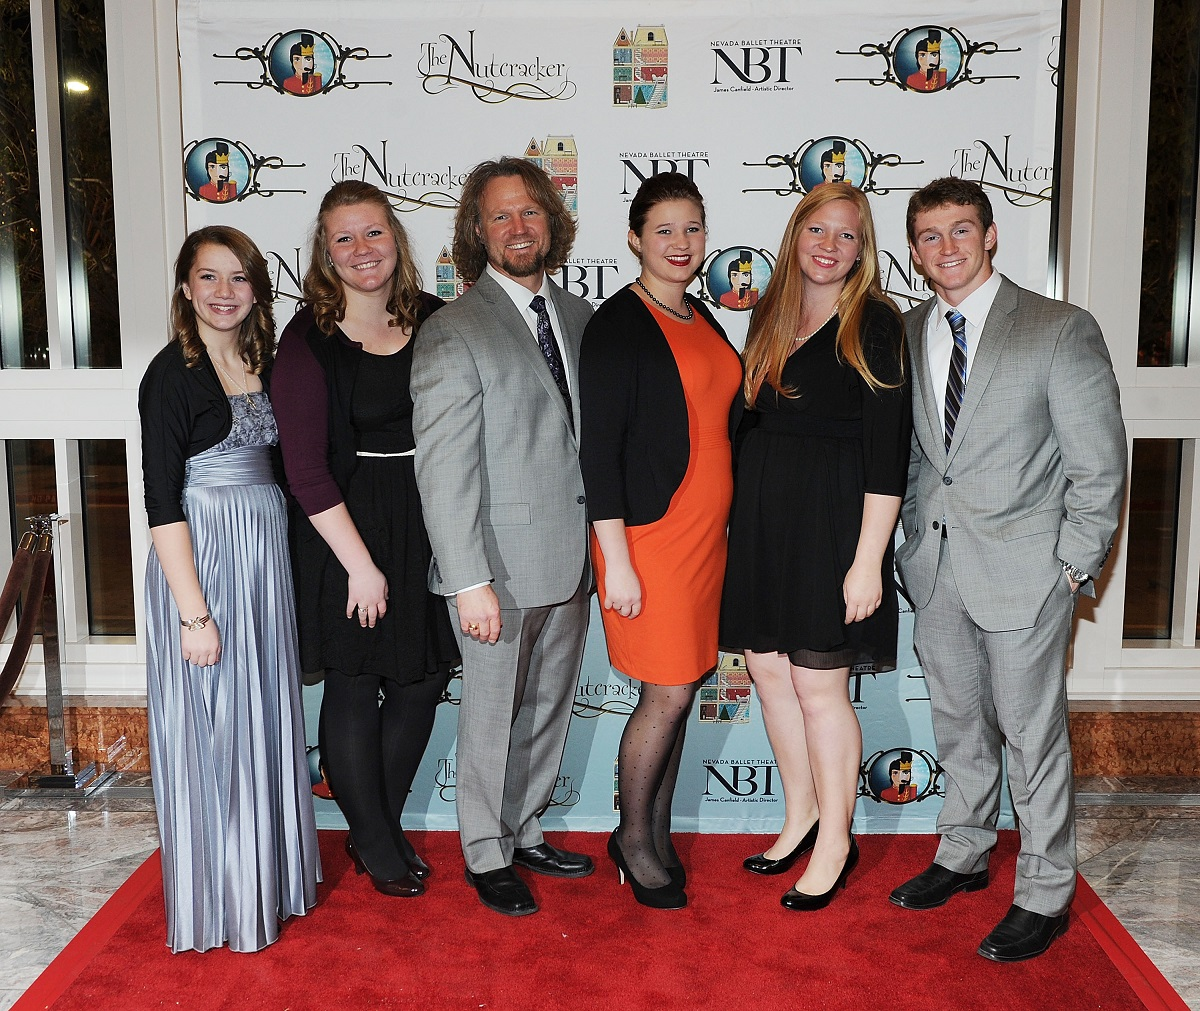 """Kody Brown and kids (Aurora, Mariah, Mykelti, Aspyn, and Logan Brown) on the red carpet at Nevada Ballet Theater's """"The Nutcracker"""" at The Smith Center For The Performing Arts in 2013 in Las Vegas, Nevada"""